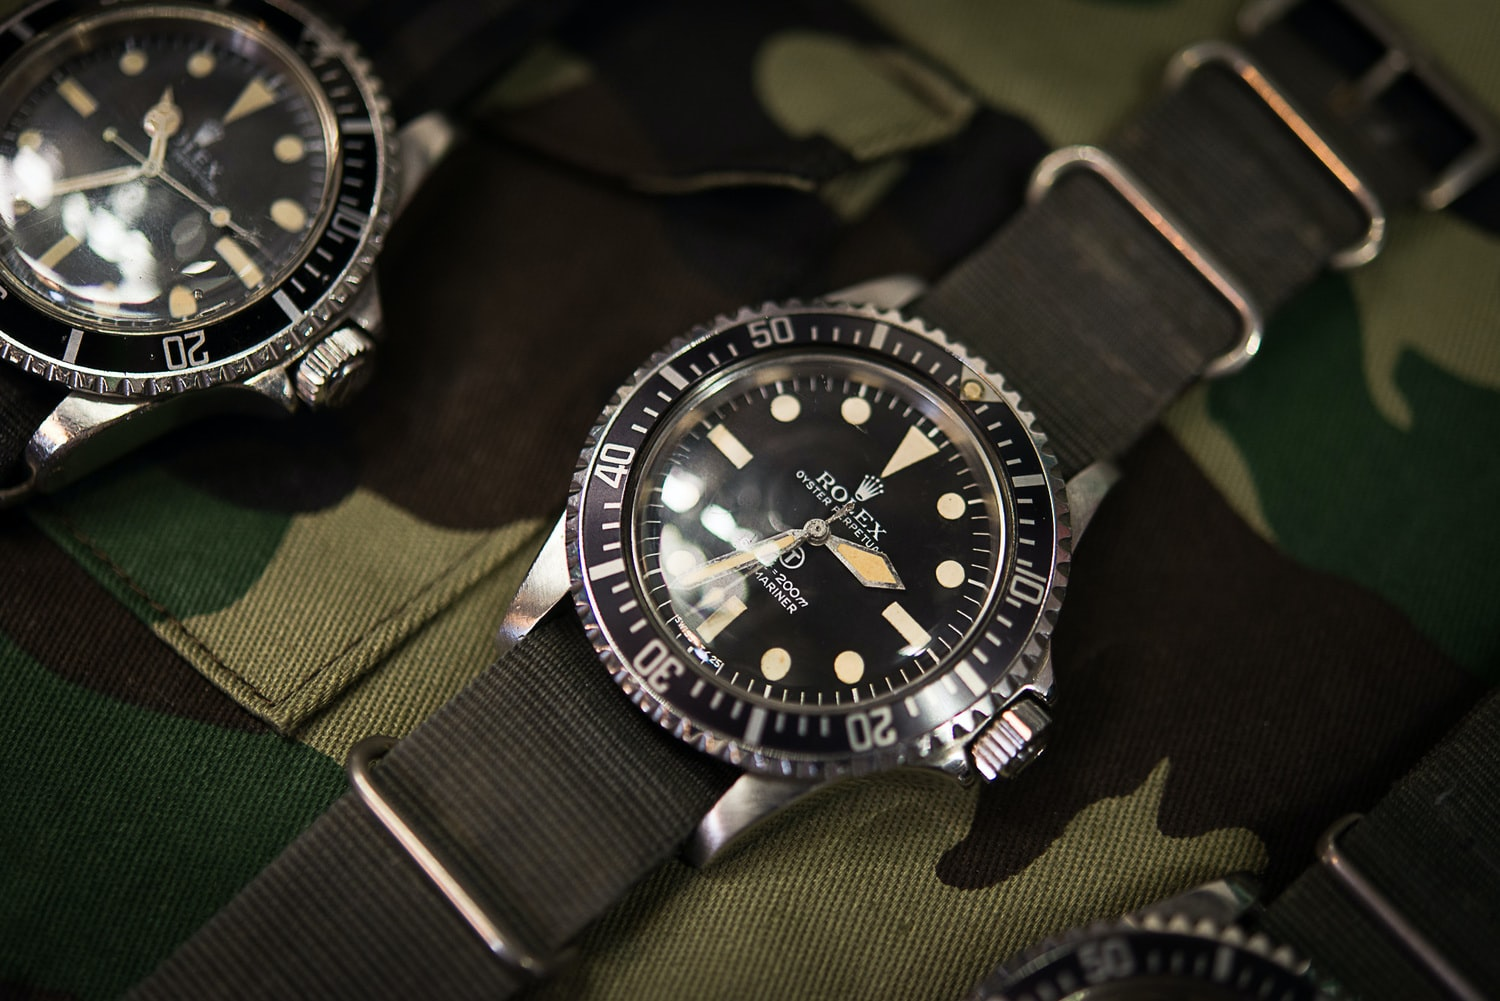 rolex milsub Historical Perspectives: CWC: The Watch That Replaced The MilSub Historical Perspectives: CWC: The Watch That Replaced The MilSub 4